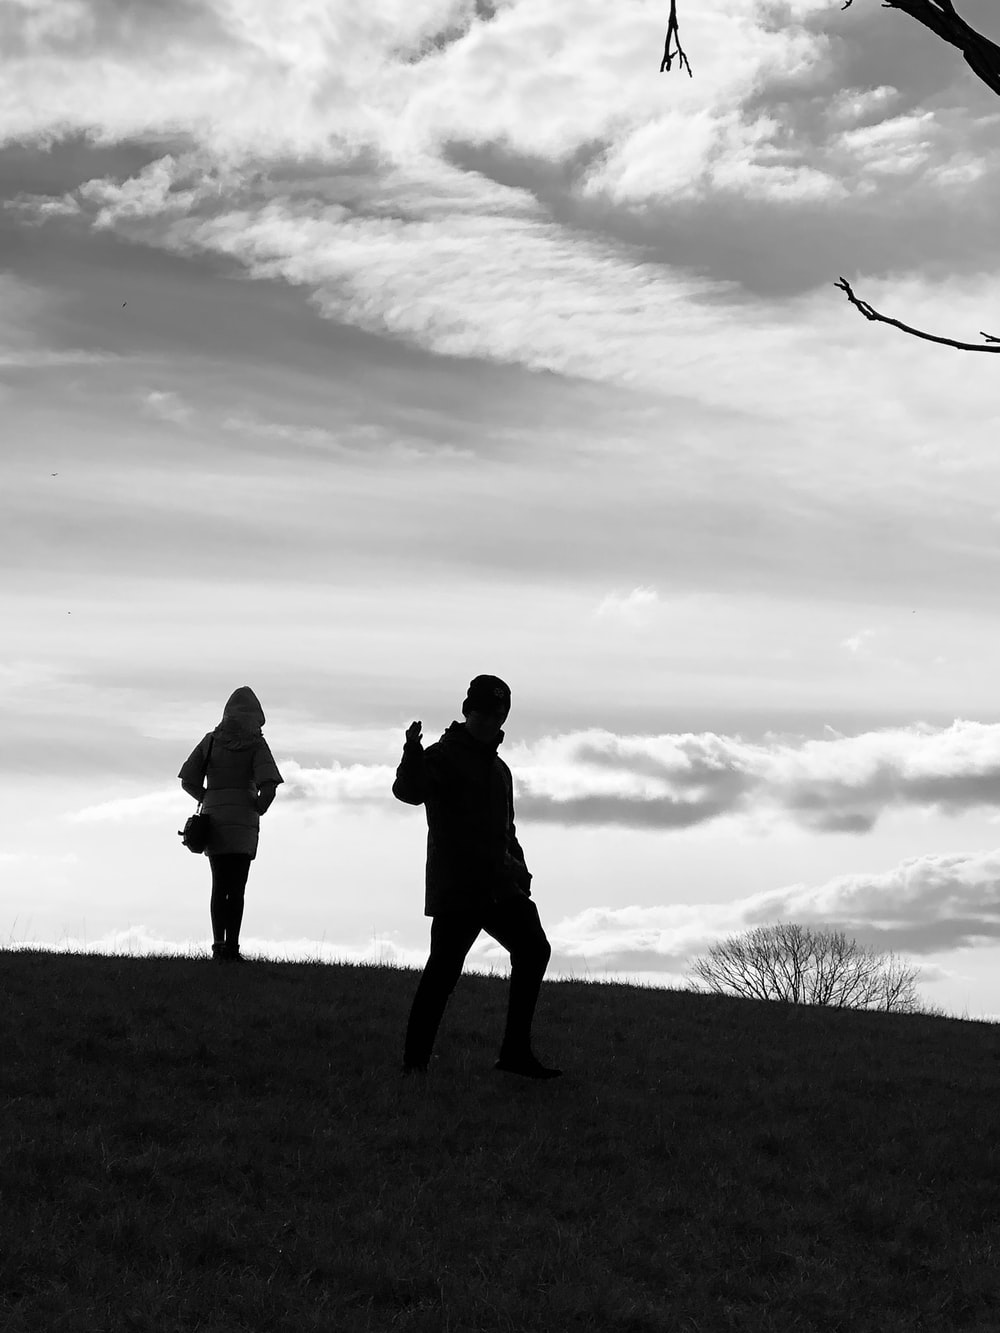 silhouette of 2 person standing on grass field under cloudy sky during daytime